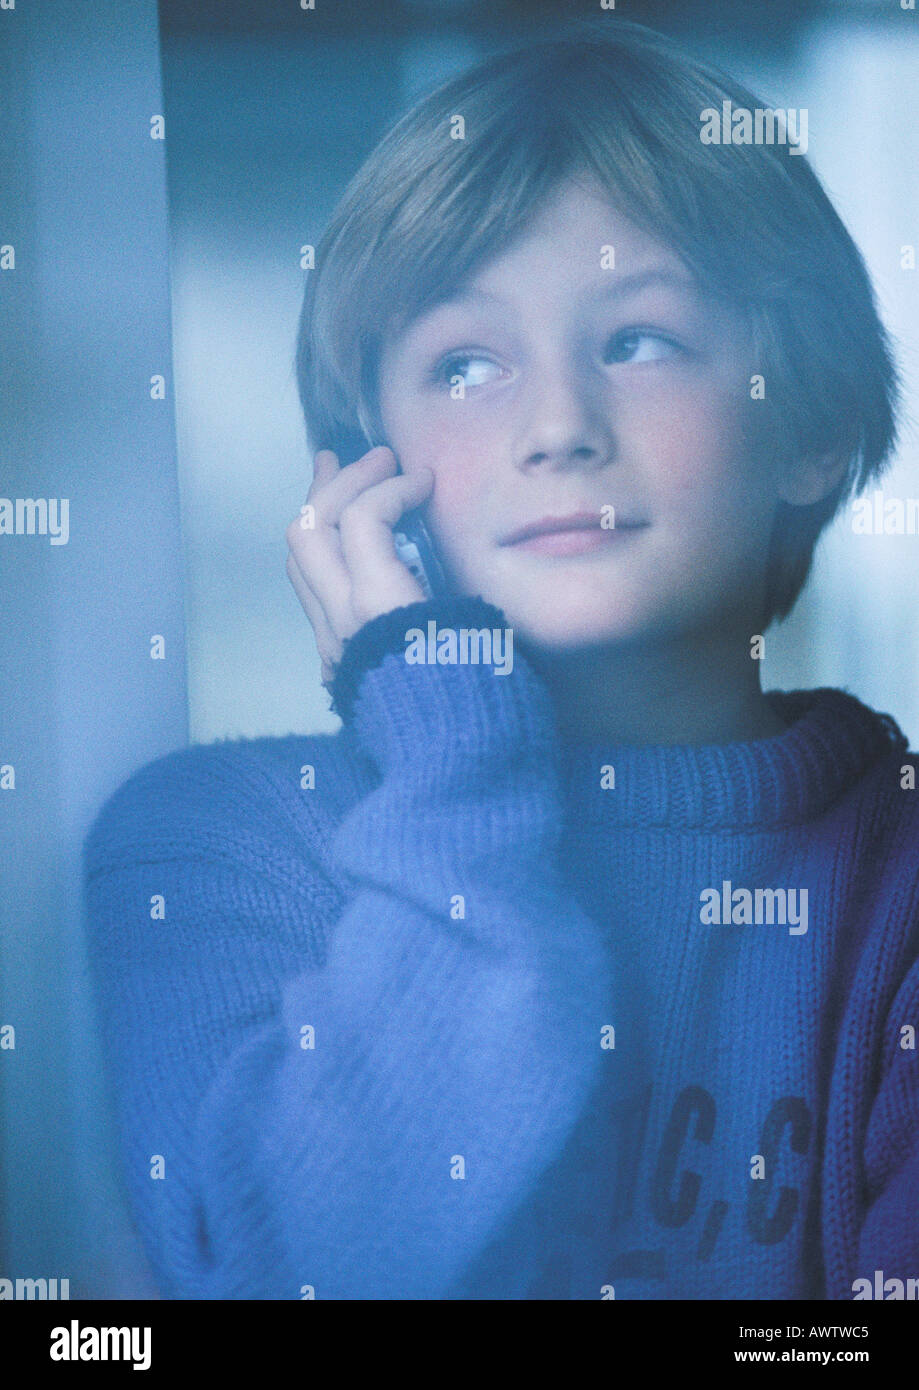 Young boy talking on phone, looking out window, portrait - Stock Image